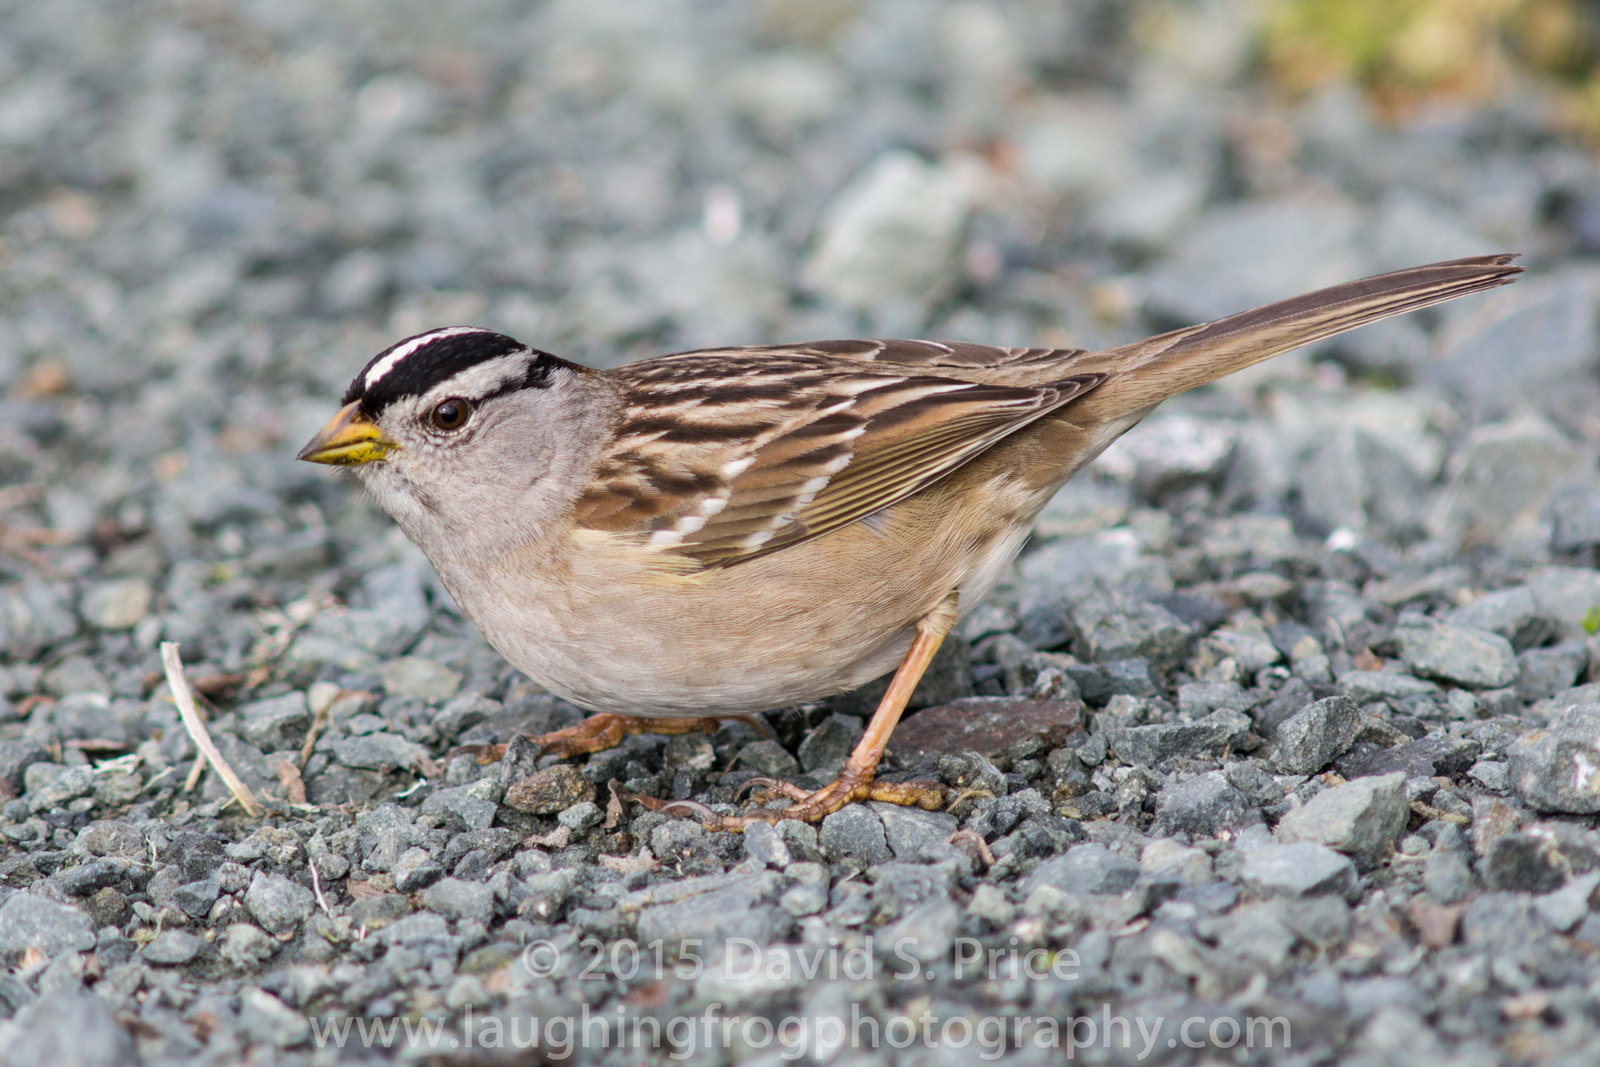 White-crowned Sparrow, HBWR, 2015 January